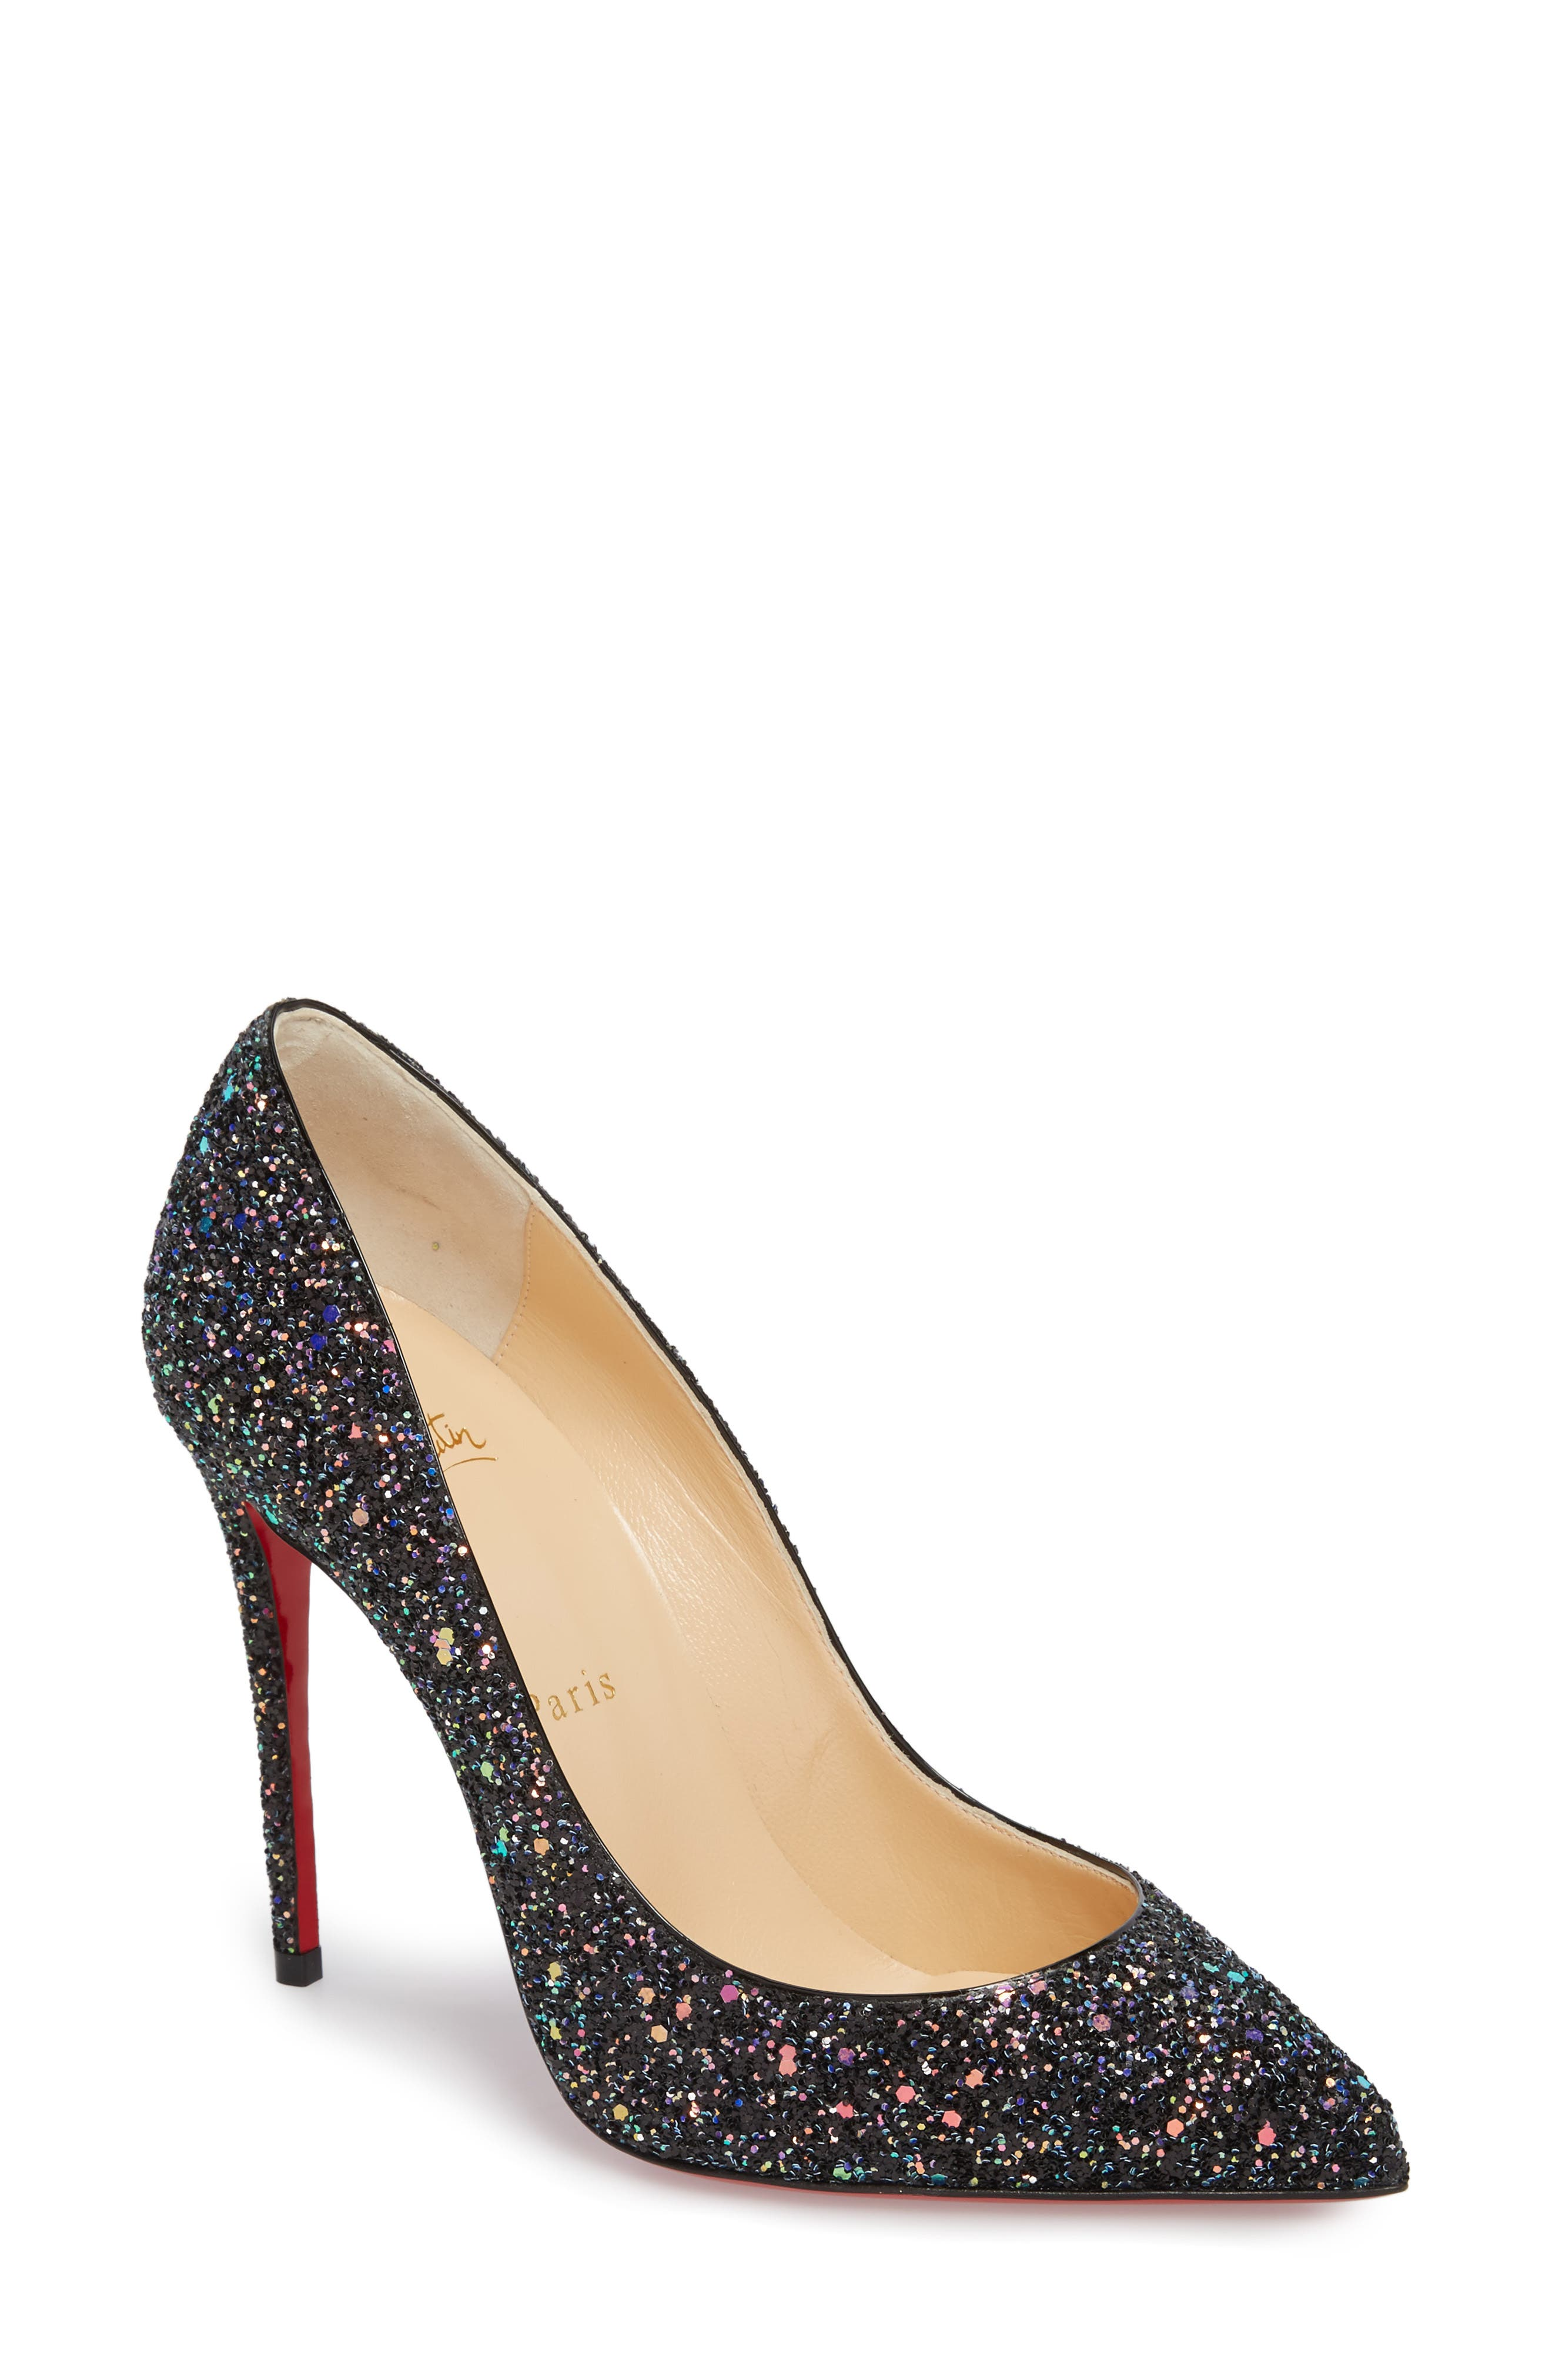 Christian Louboutin Pigalle Follies Glitter Pointy Toe Pump